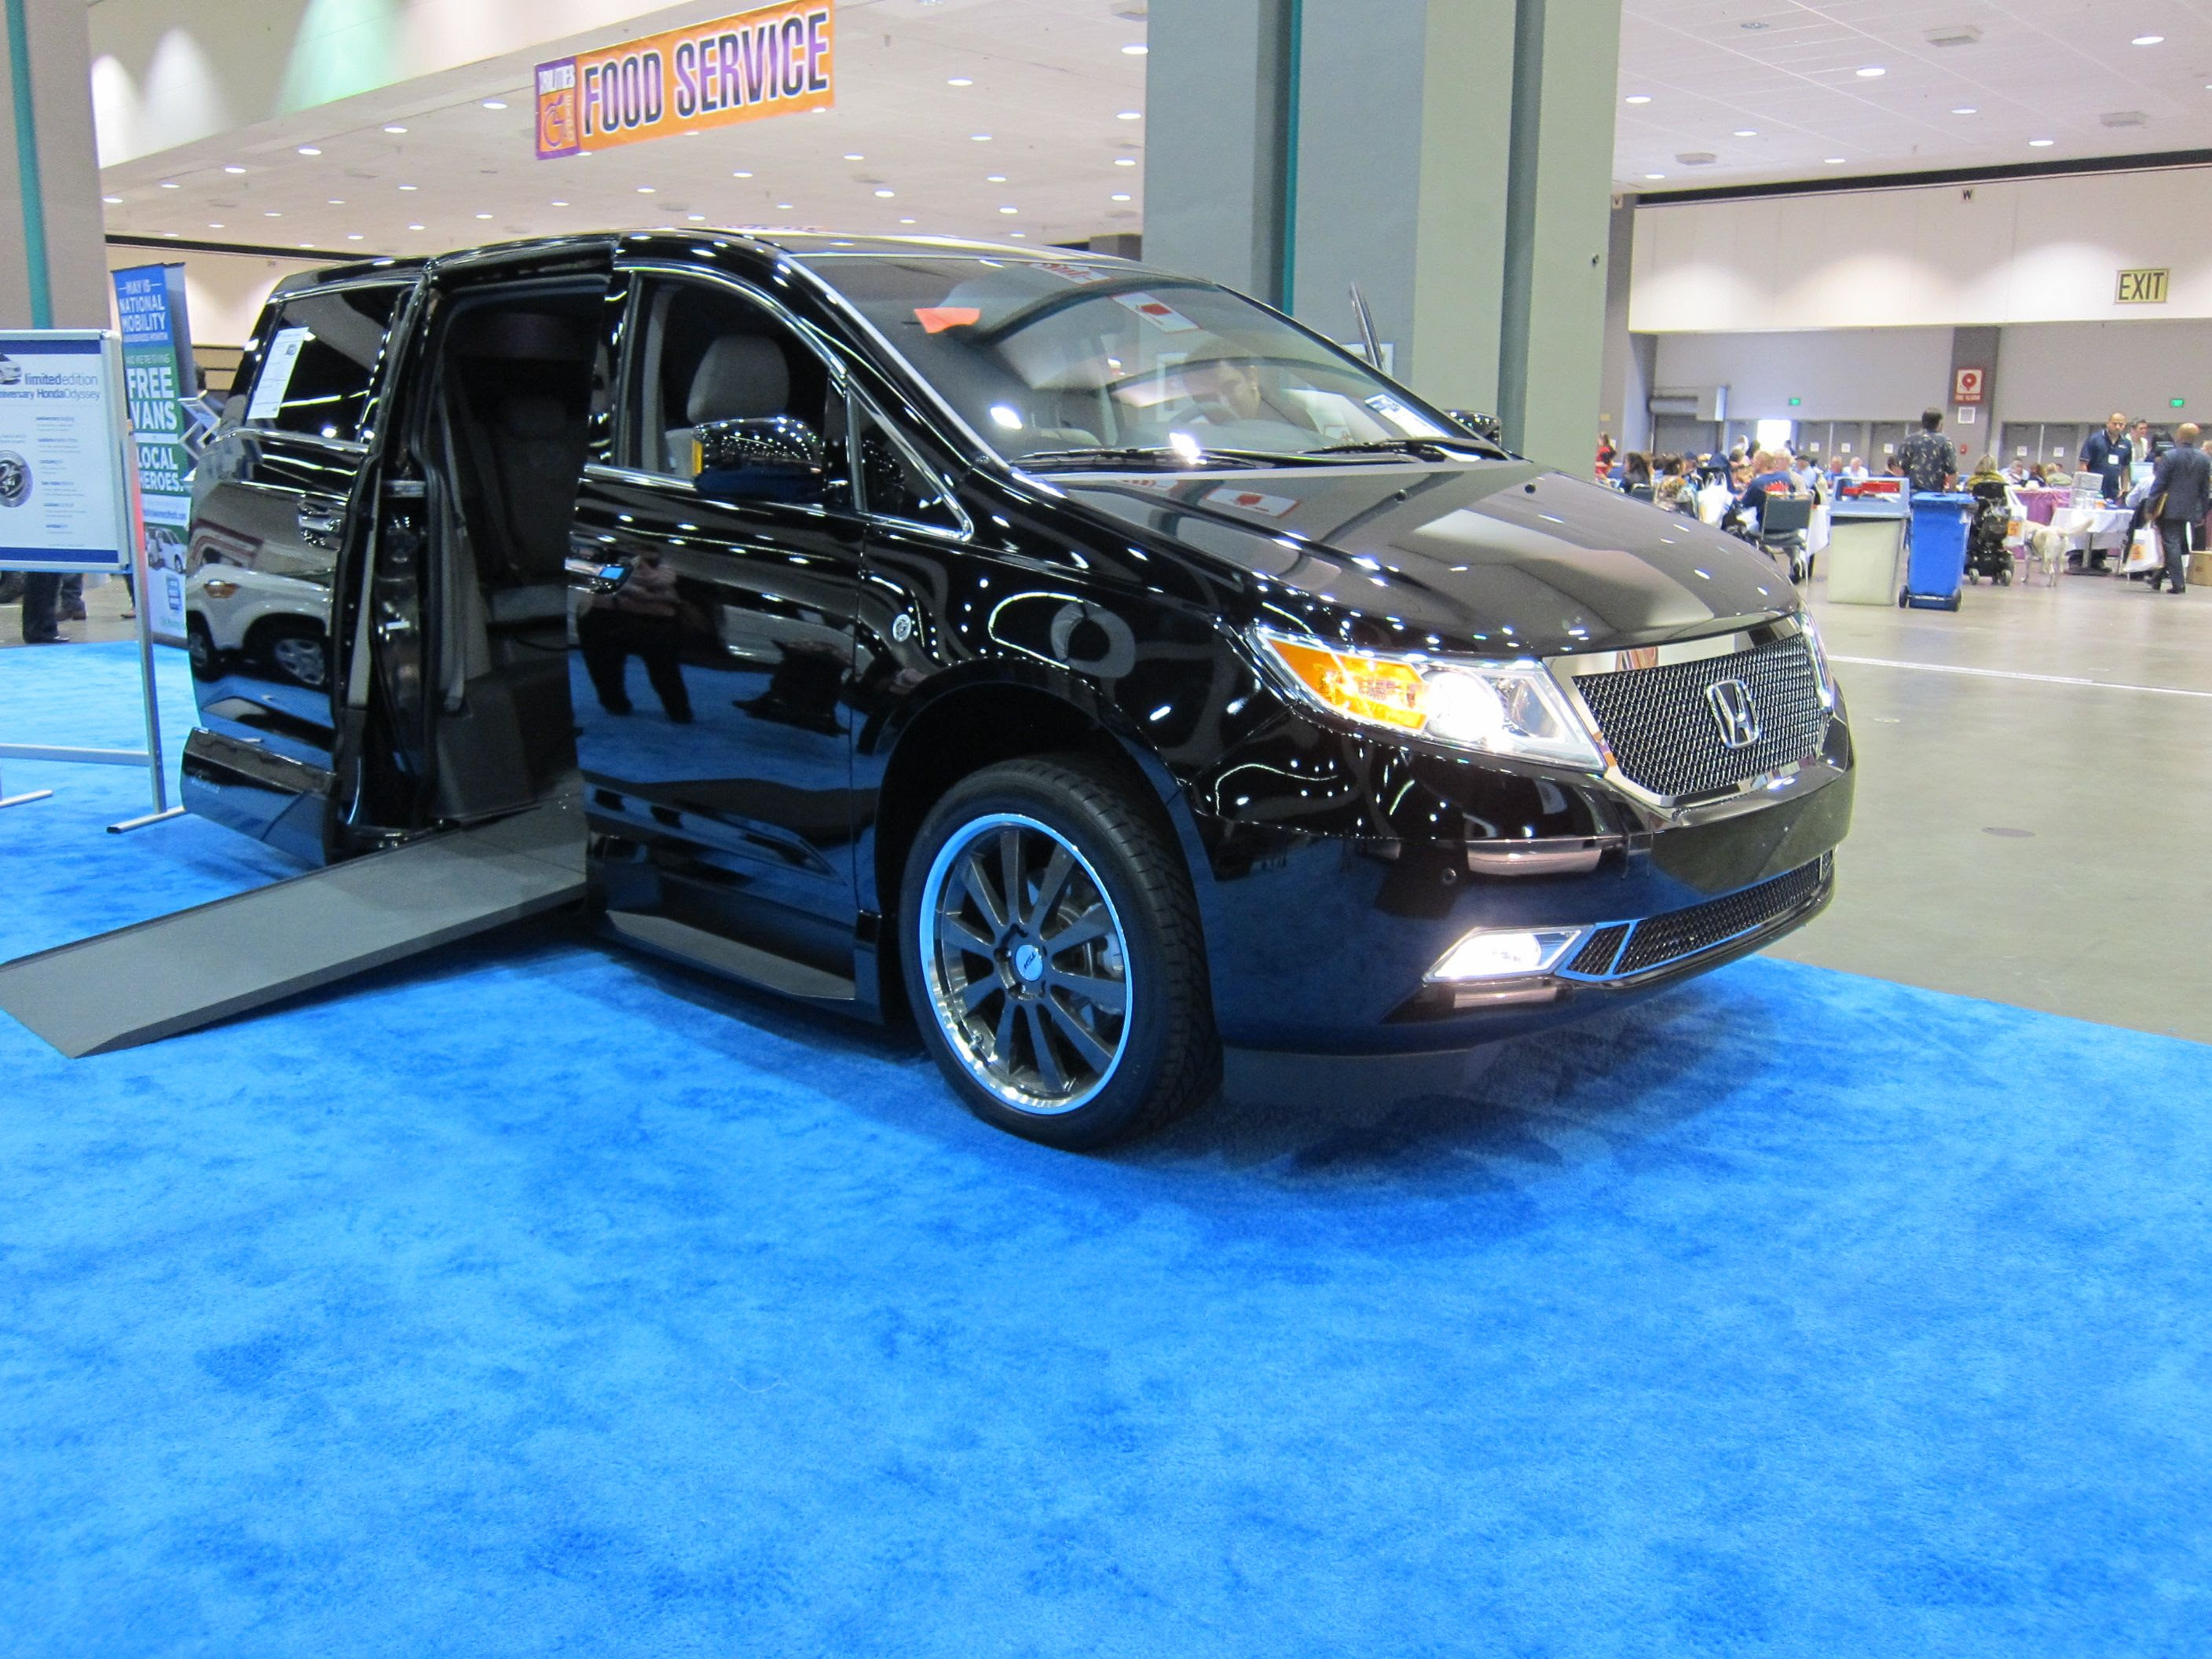 25th Anniversary Limited Edition Vmi Honda Odyssey